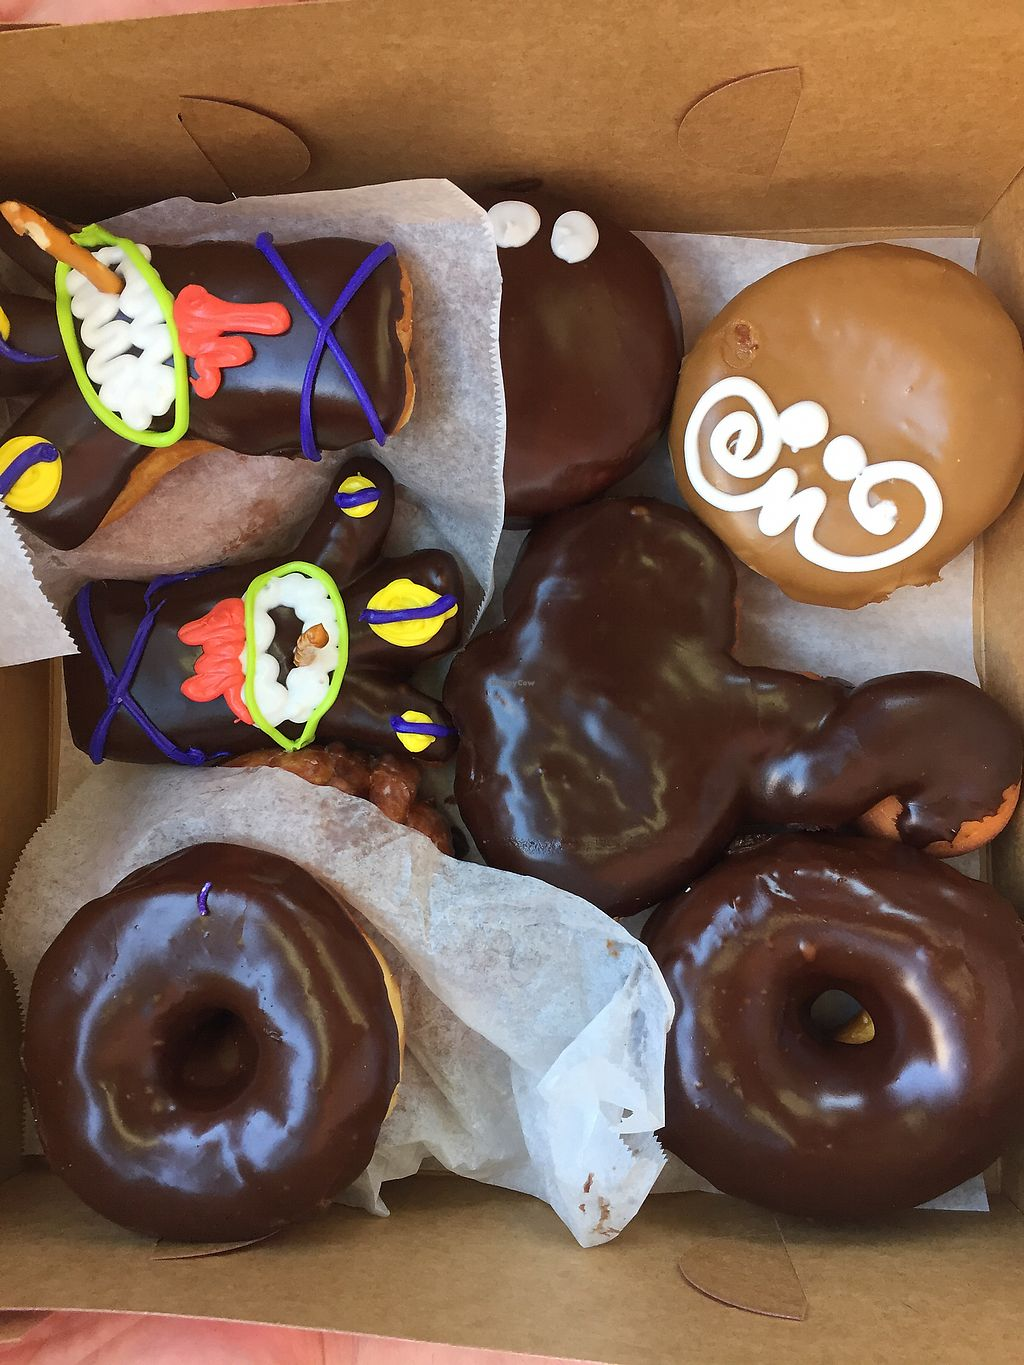 """Photo of Voodoo Doughnut  by <a href=""""/members/profile/TheVeganNarwhal"""">TheVeganNarwhal</a> <br/>Donuts <br/> February 12, 2018  - <a href='/contact/abuse/image/33103/358232'>Report</a>"""